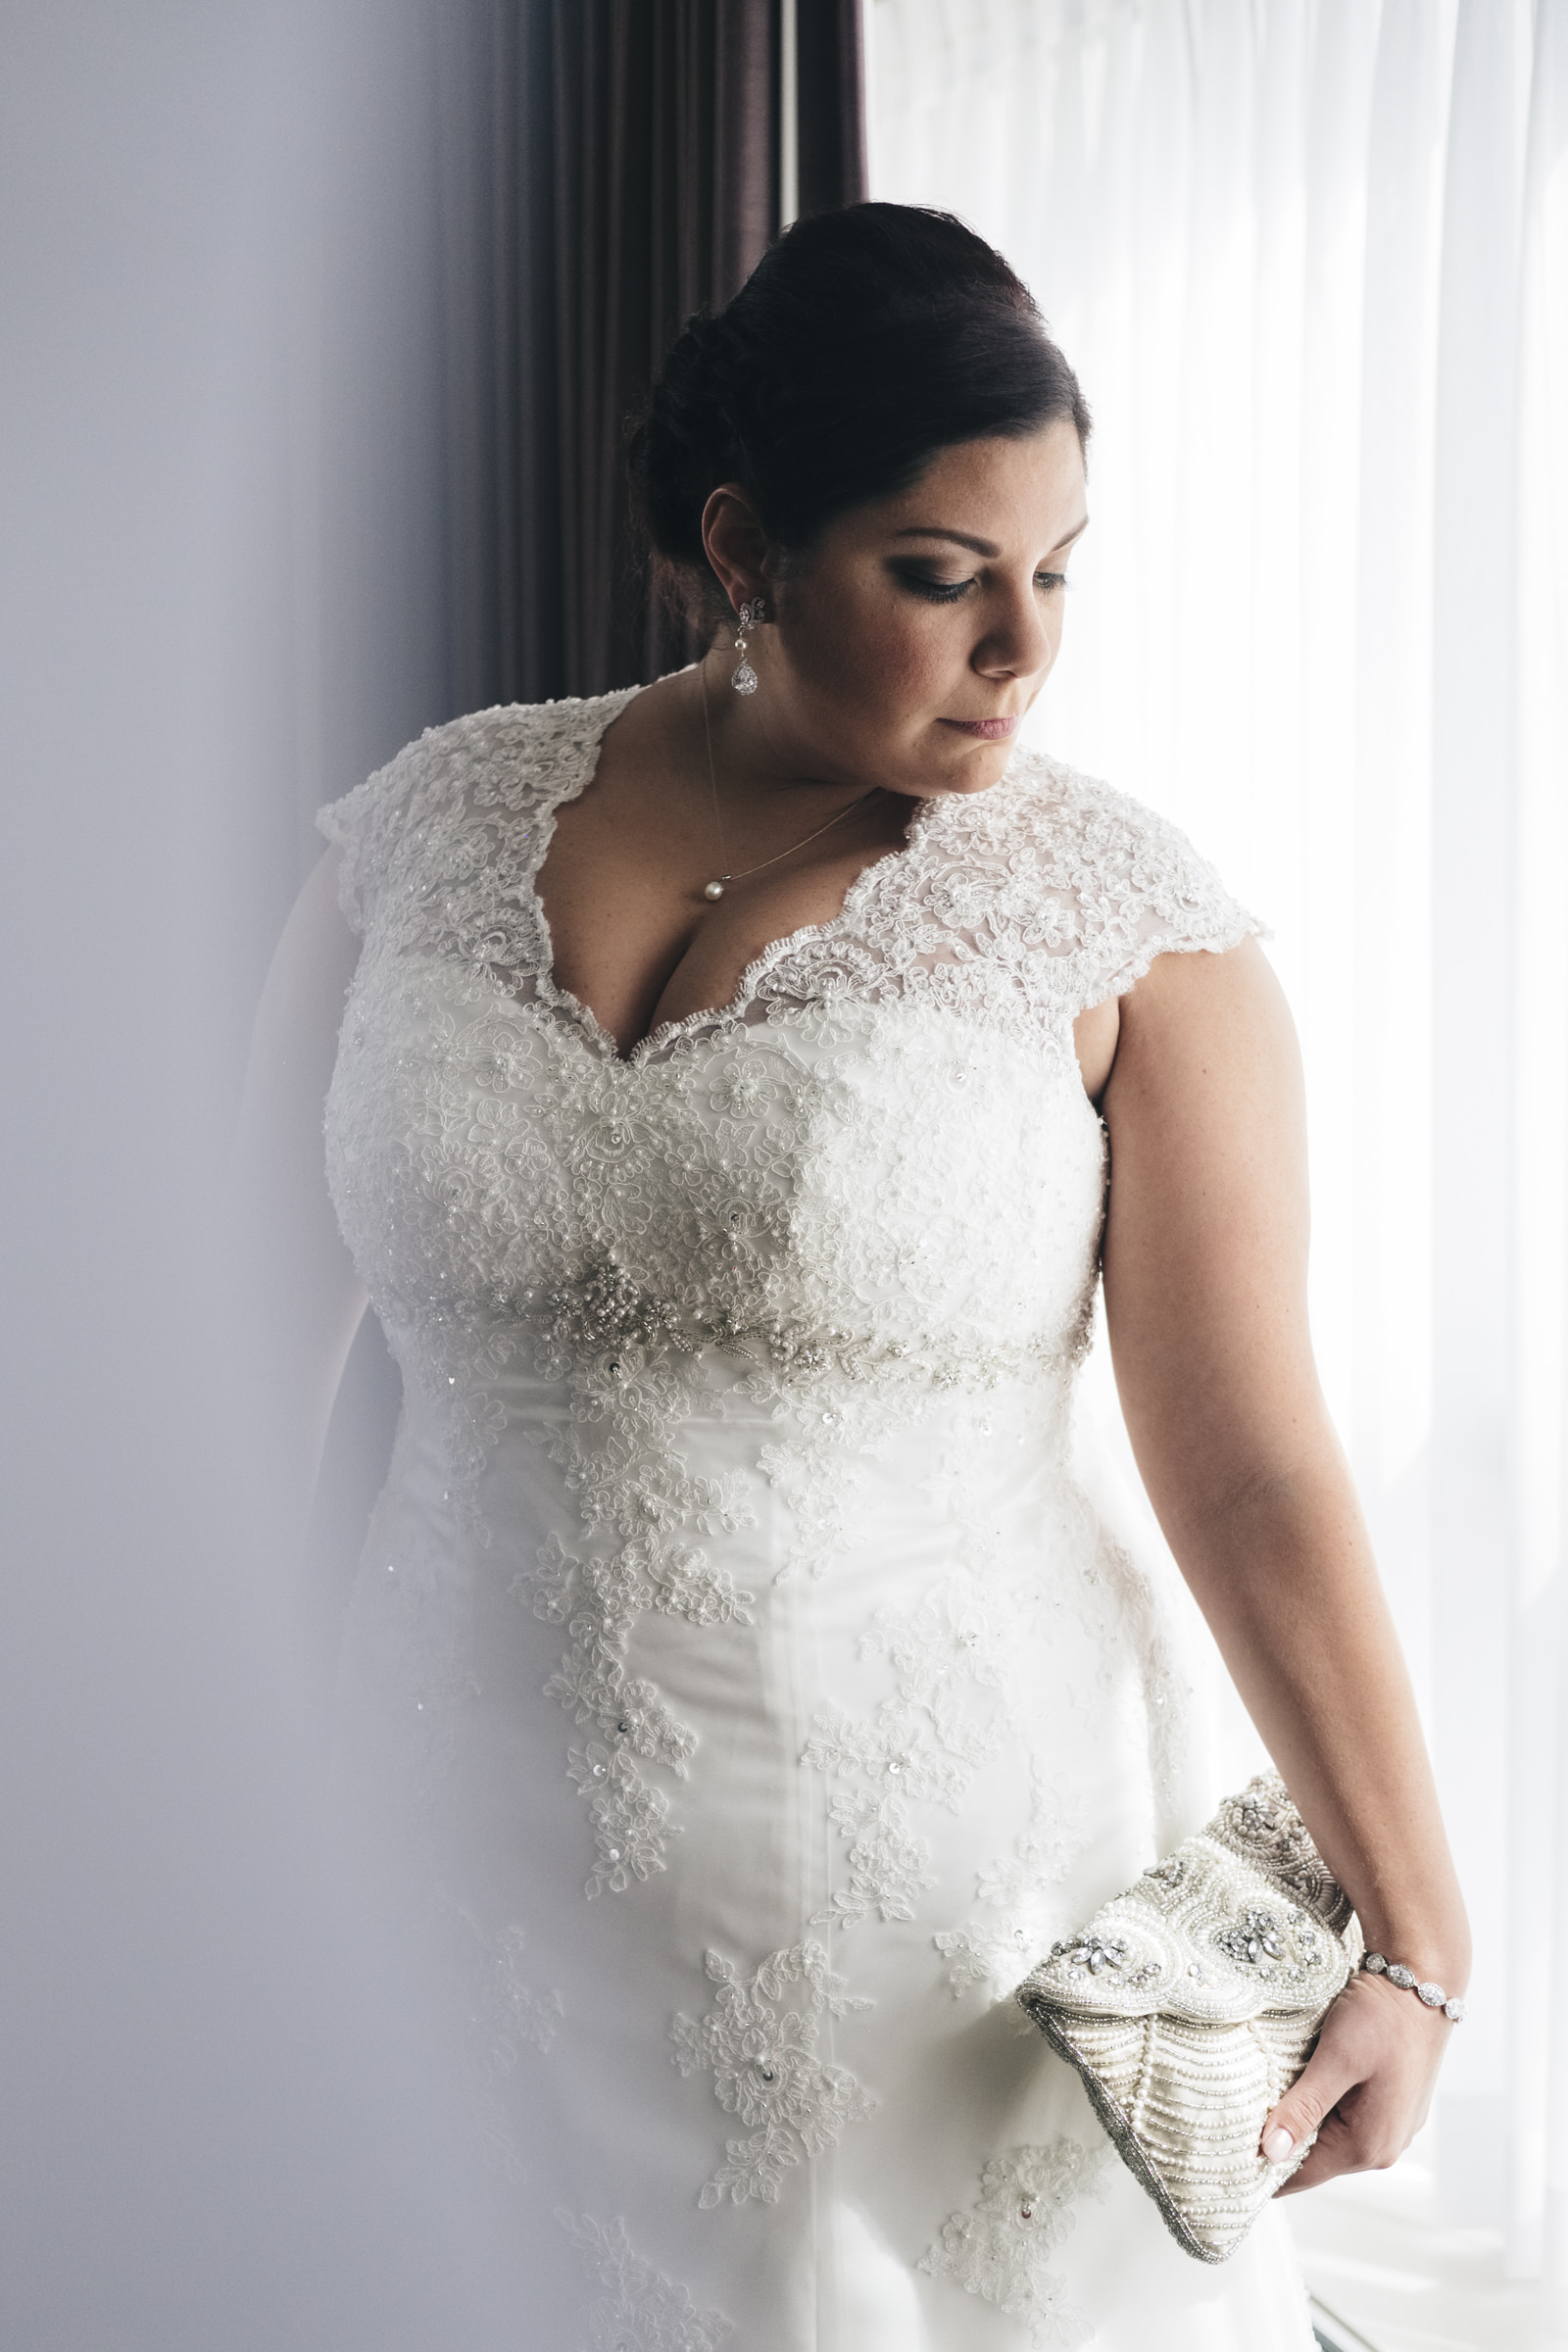 Bride stands in the window of The Park Inn Hotel in downtown Toledo on her wedding day.